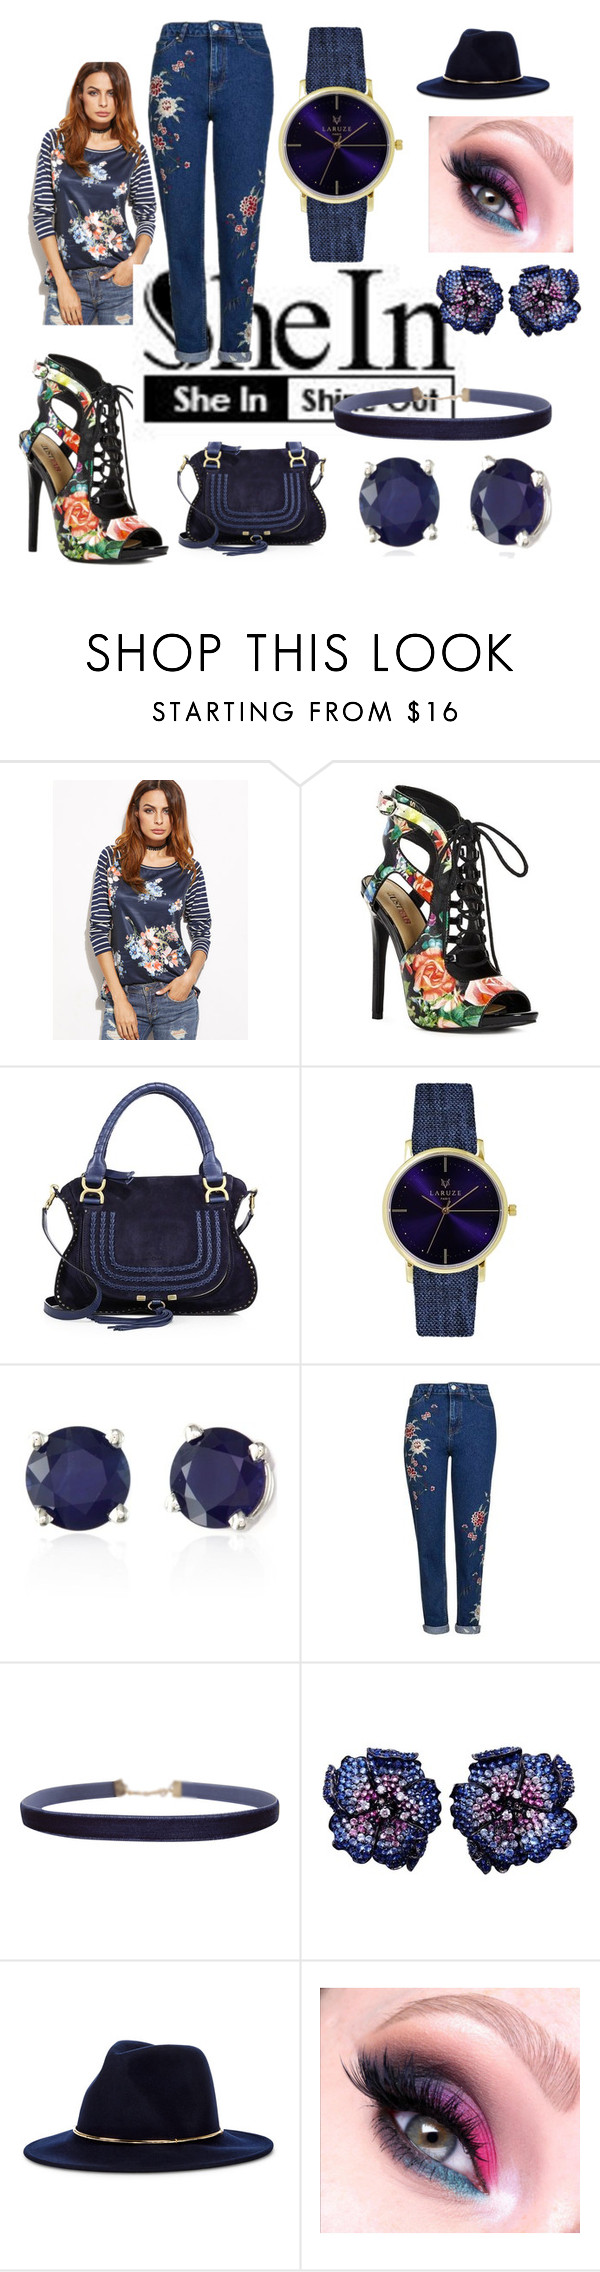 """""""SheIn Shine Out"""" by kindee01 ❤ liked on Polyvore featuring JustFab, Chloé, Laruze, Effy Jewelry, Topshop, Humble Chic and Sole Society"""